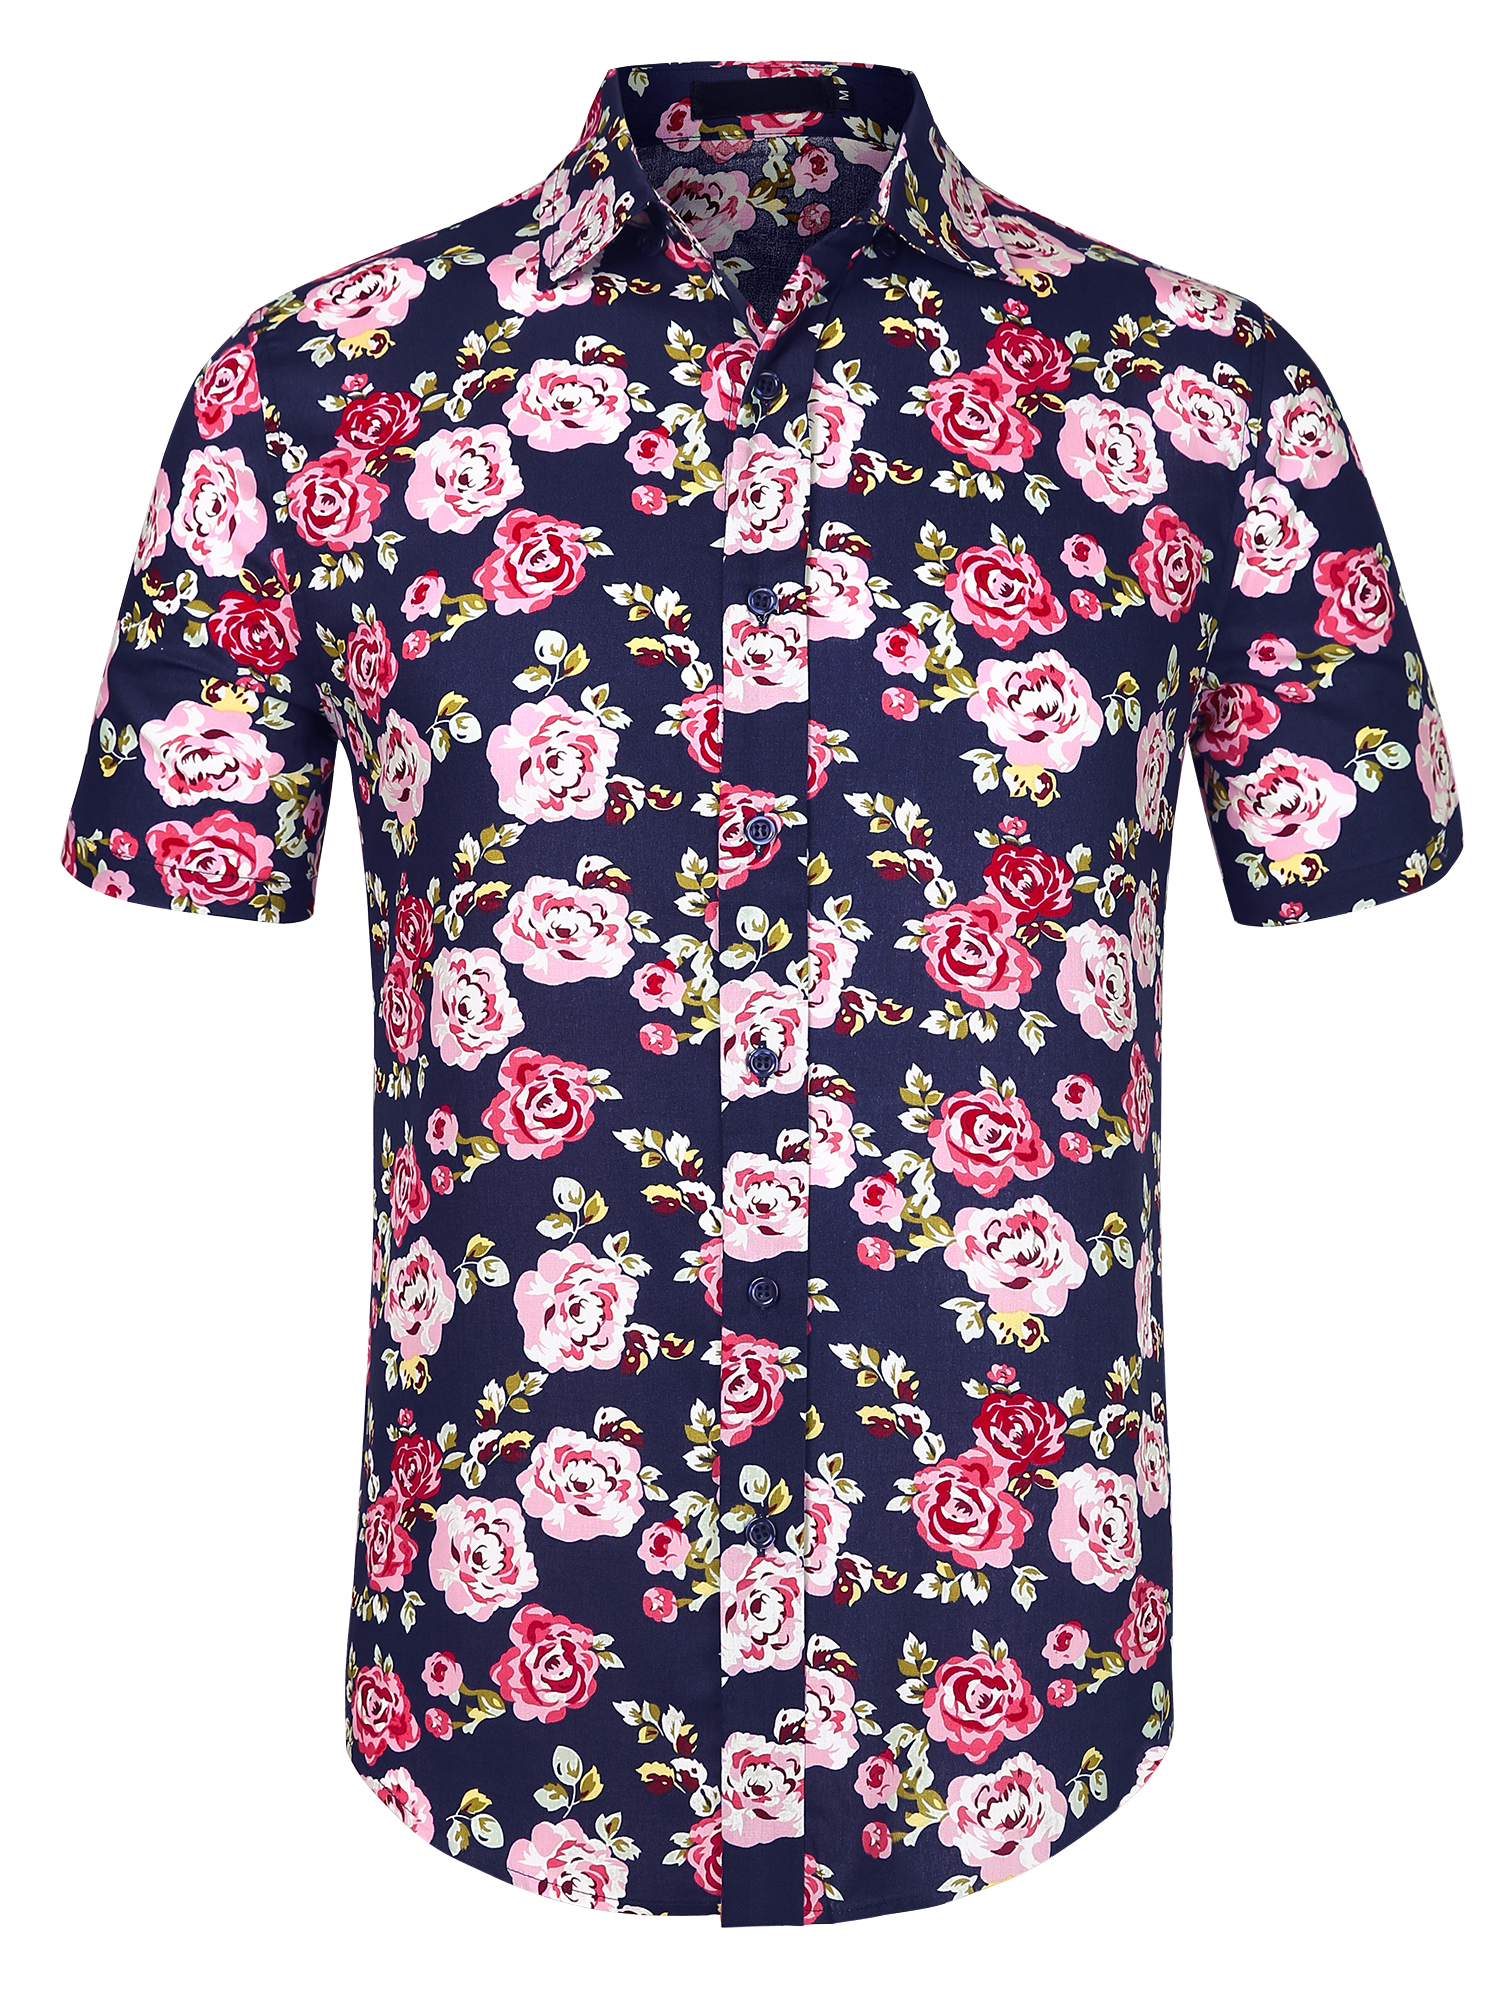 Men Short Sleeve Button Down Floral Print Summer Casual Shirt Multicolor S